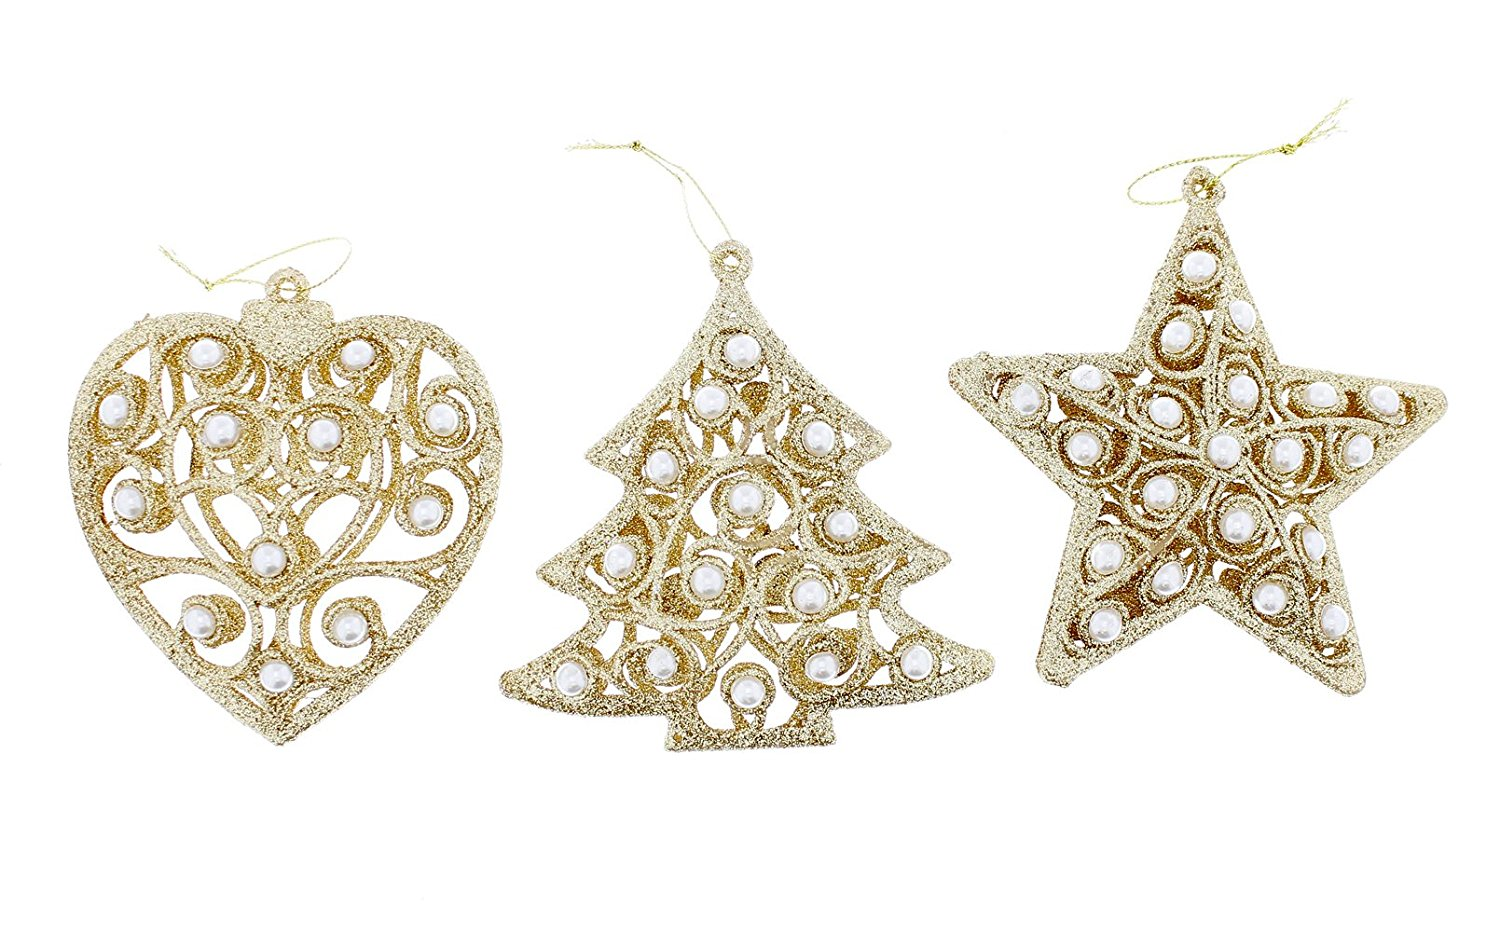 Festive Elegant Shimmering Sparkling Christmas Holiday Tree, Star, & Heart Glitter Ornaments with Pearls, Gold, Medium, 3 Pack, 4""